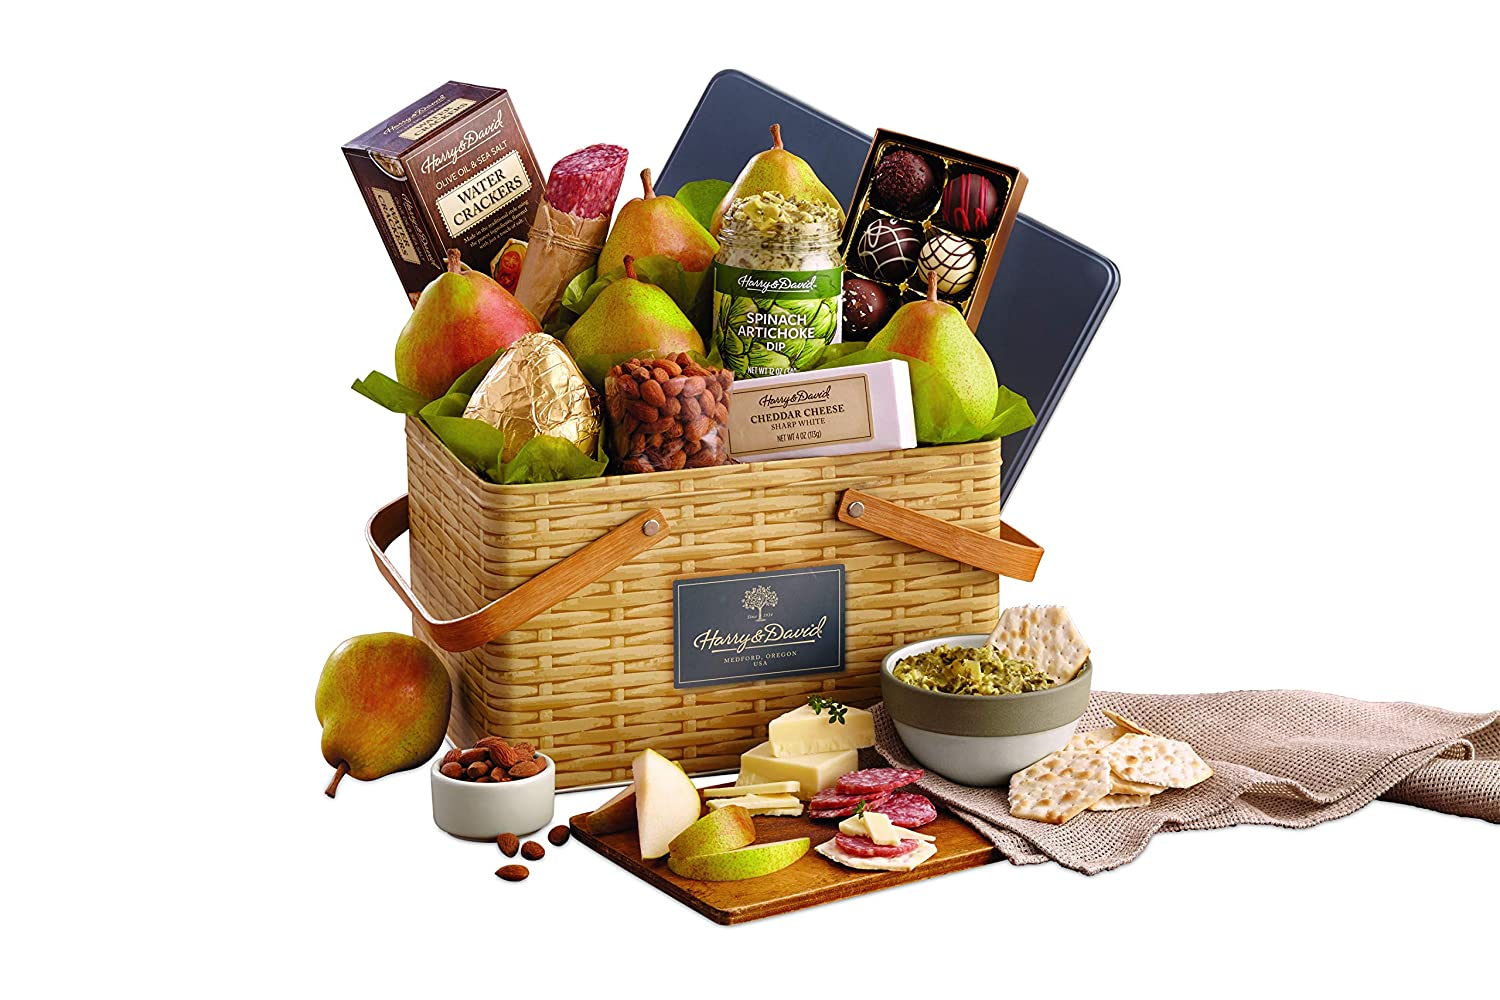 Amazon.com : Harry & David Picnic Basket Pears, Cheese, Nuts, and Chocolate Gift Basket : Grocery & Gourmet Food